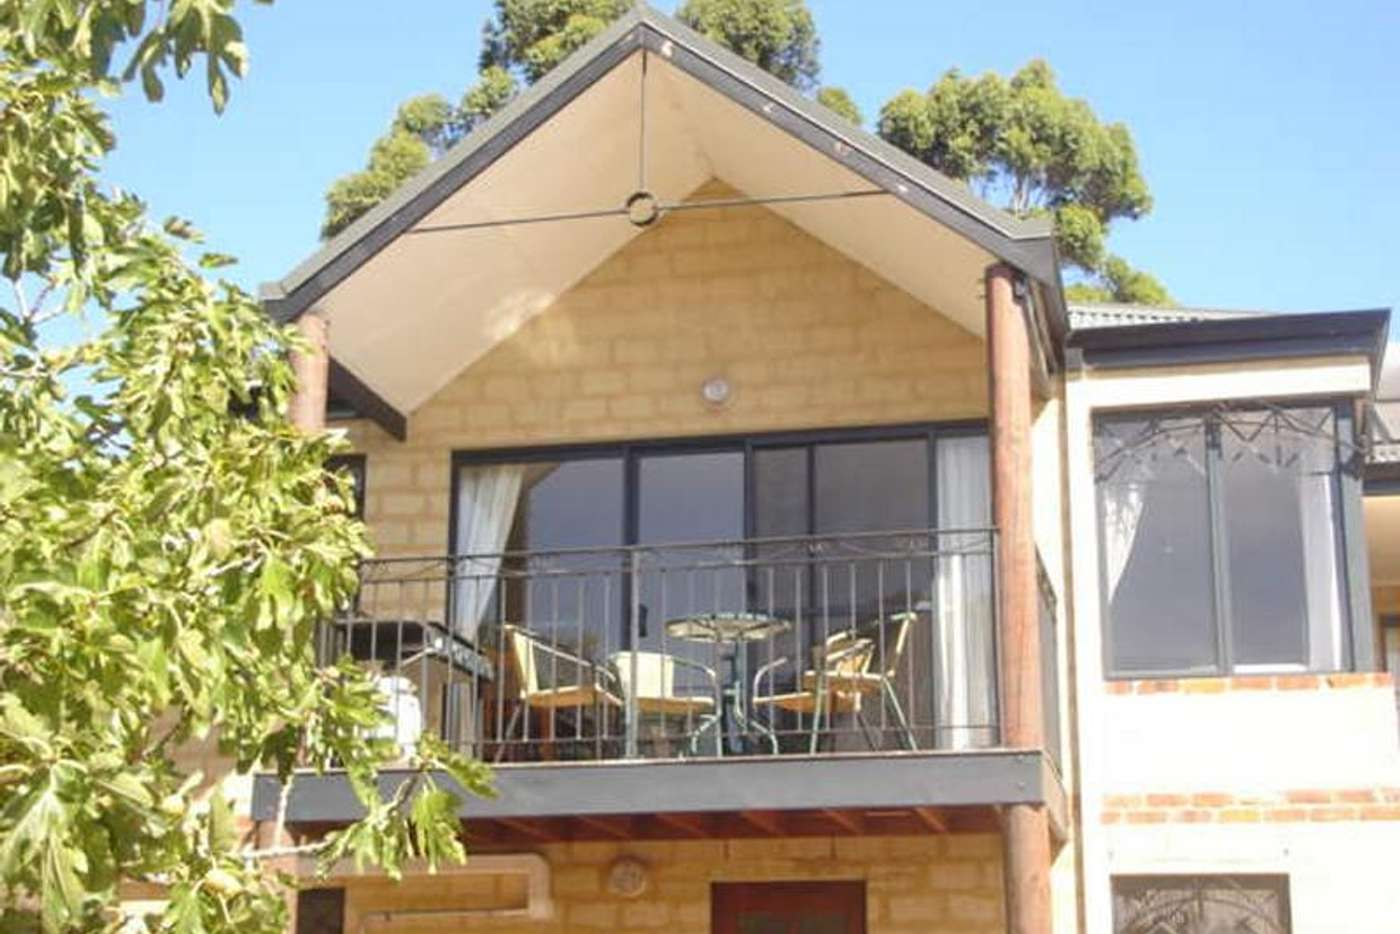 Main view of Homely townhouse listing, 2A/41 Townview Terrace, Margaret River WA 6285